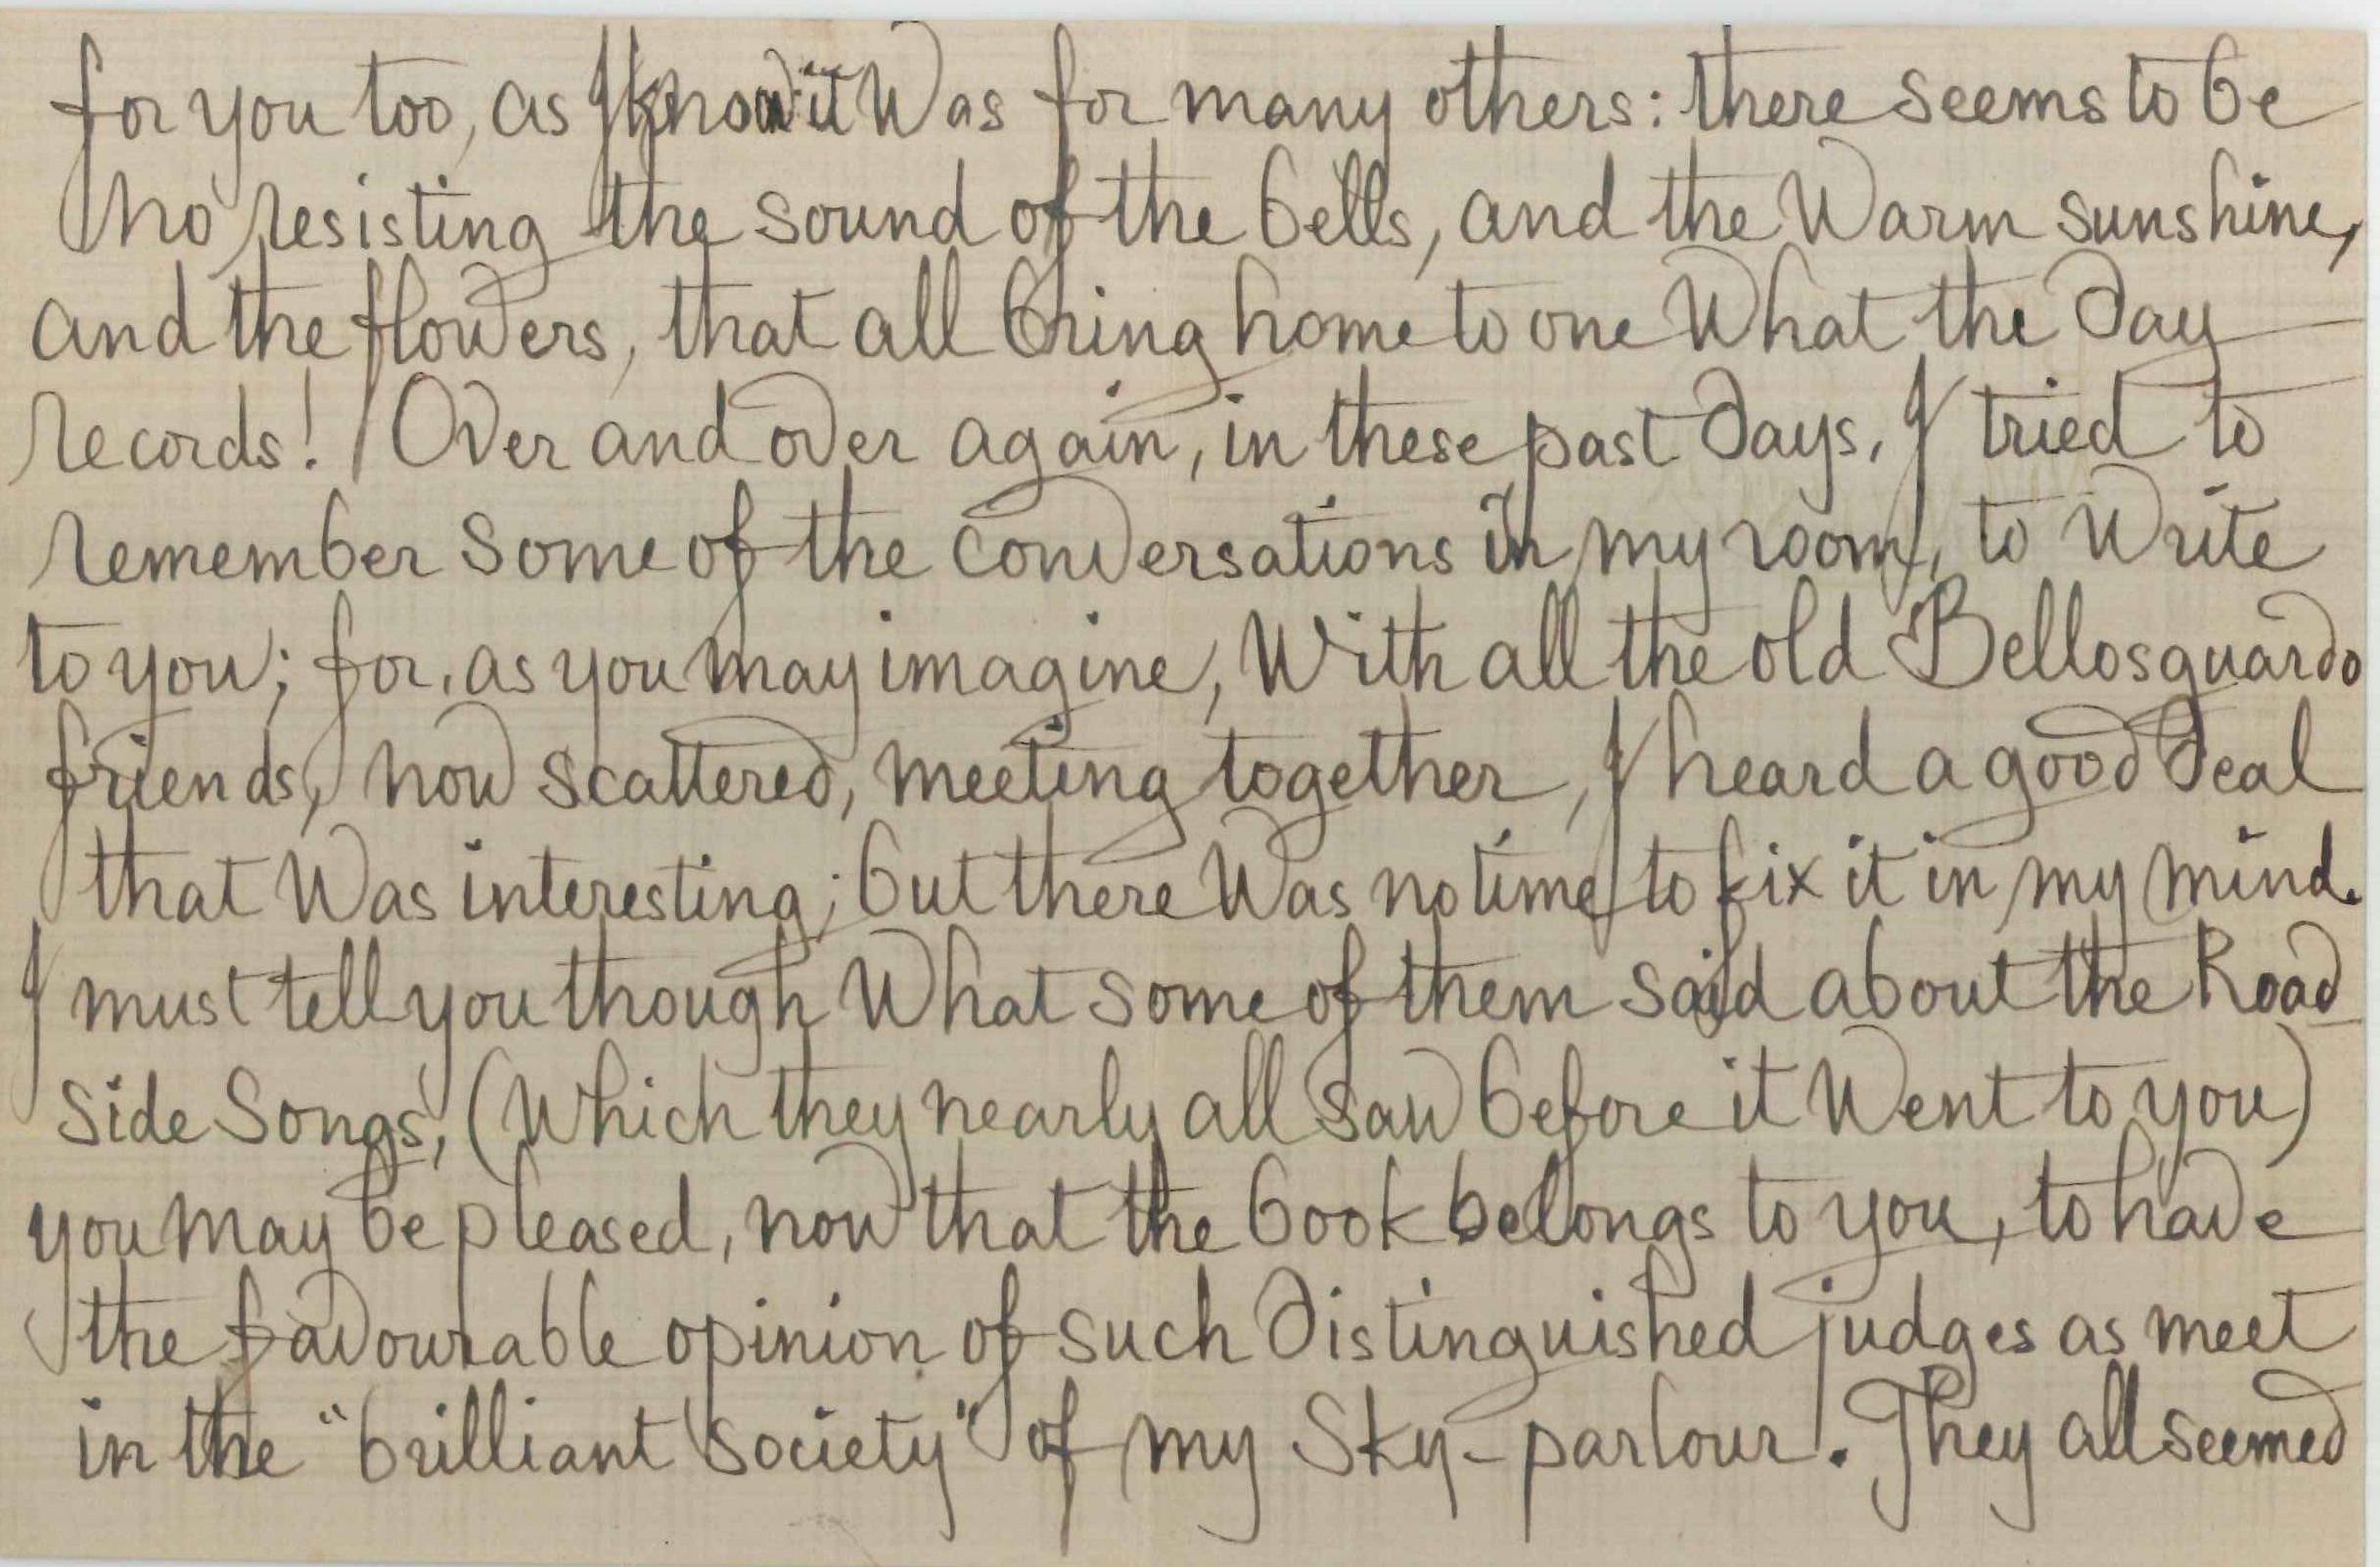 Joan severn armstrong browning library museum letter from francesca alexander to john ruskin ca april 1885 page spiritdancerdesigns Image collections